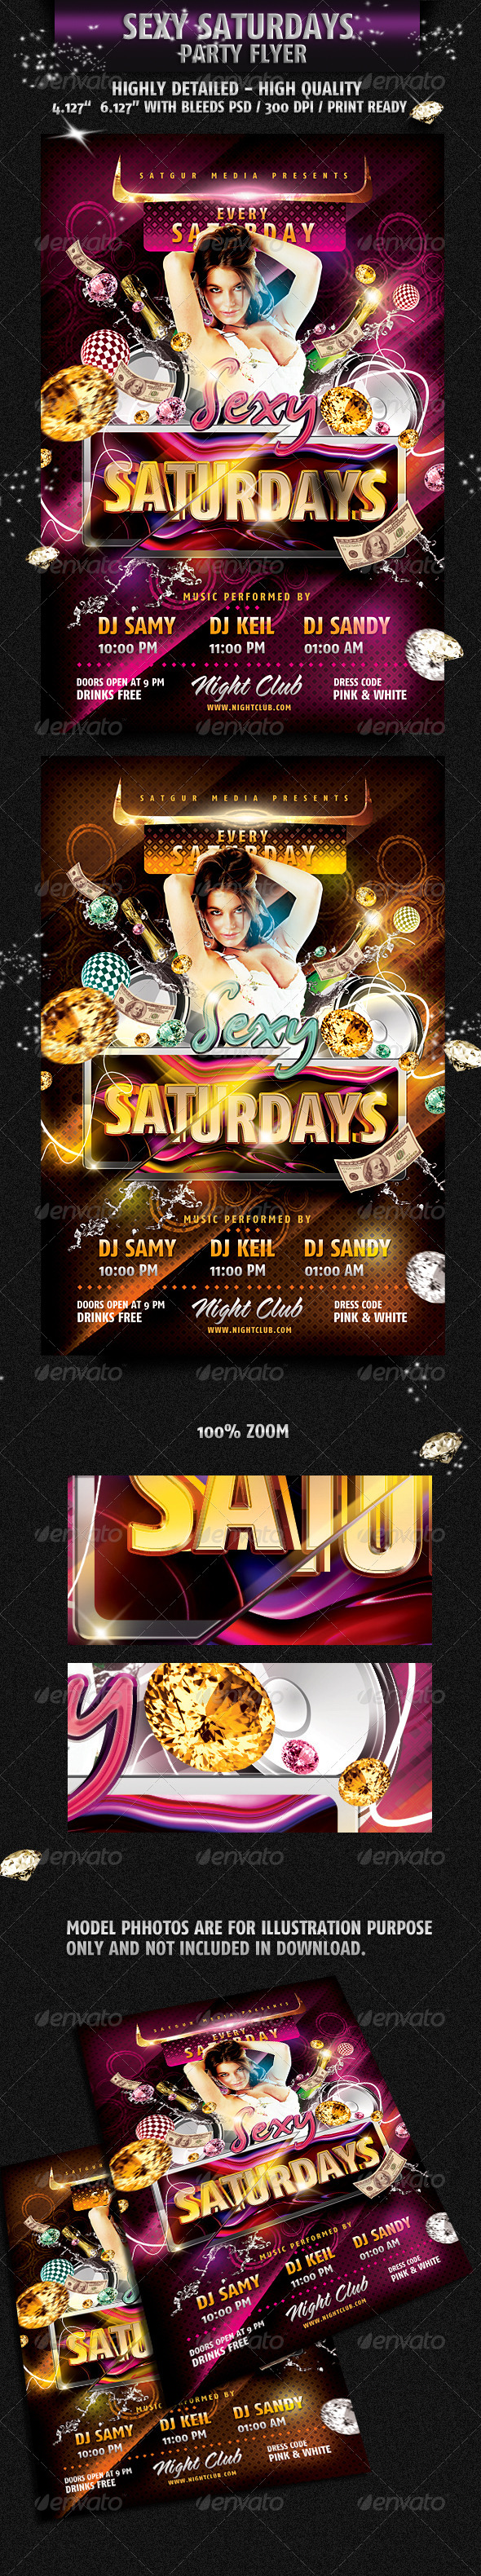 Sexy Saturday Dance Party Flyer